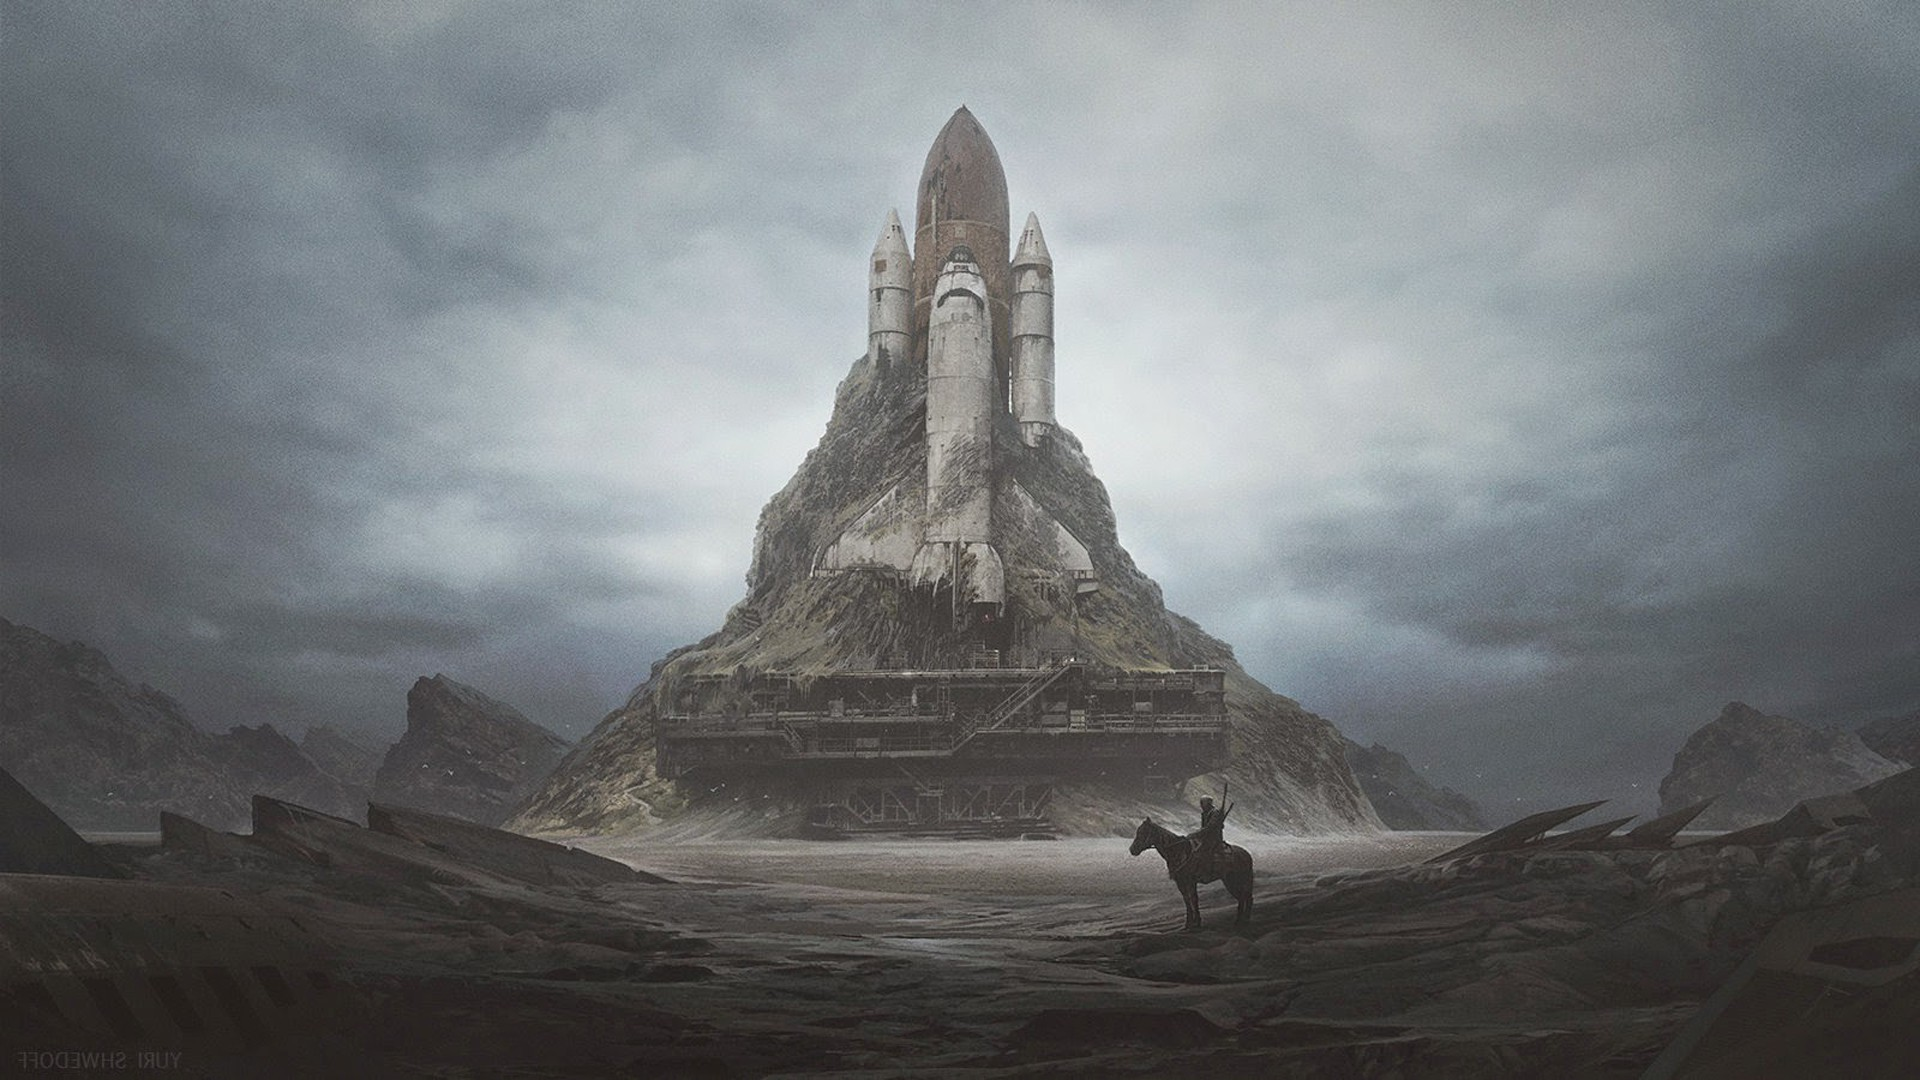 launch Pads Space Shuttle Wasteland Apocalyptic Dystopian 1920x1080